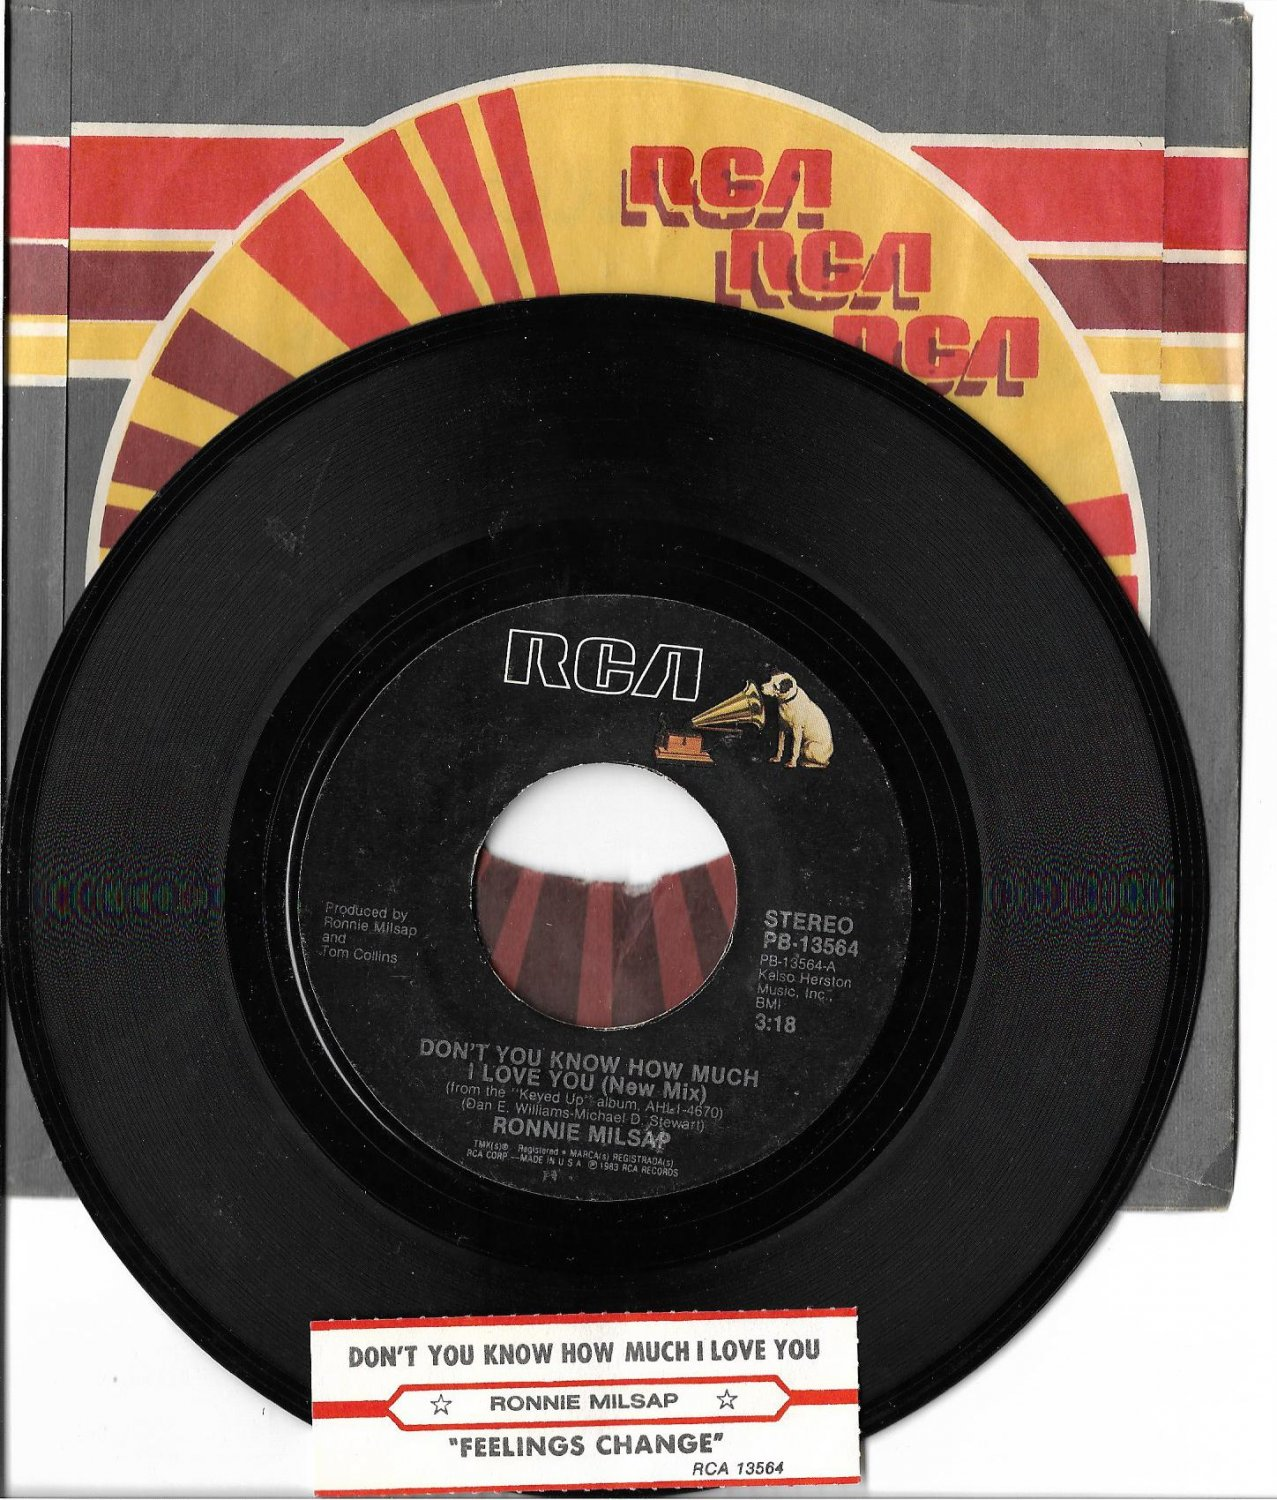 """Ronnie Milsap: """"Don't You Know How Much I Love You"""" - '83 - nice vinyl & juke strip!"""